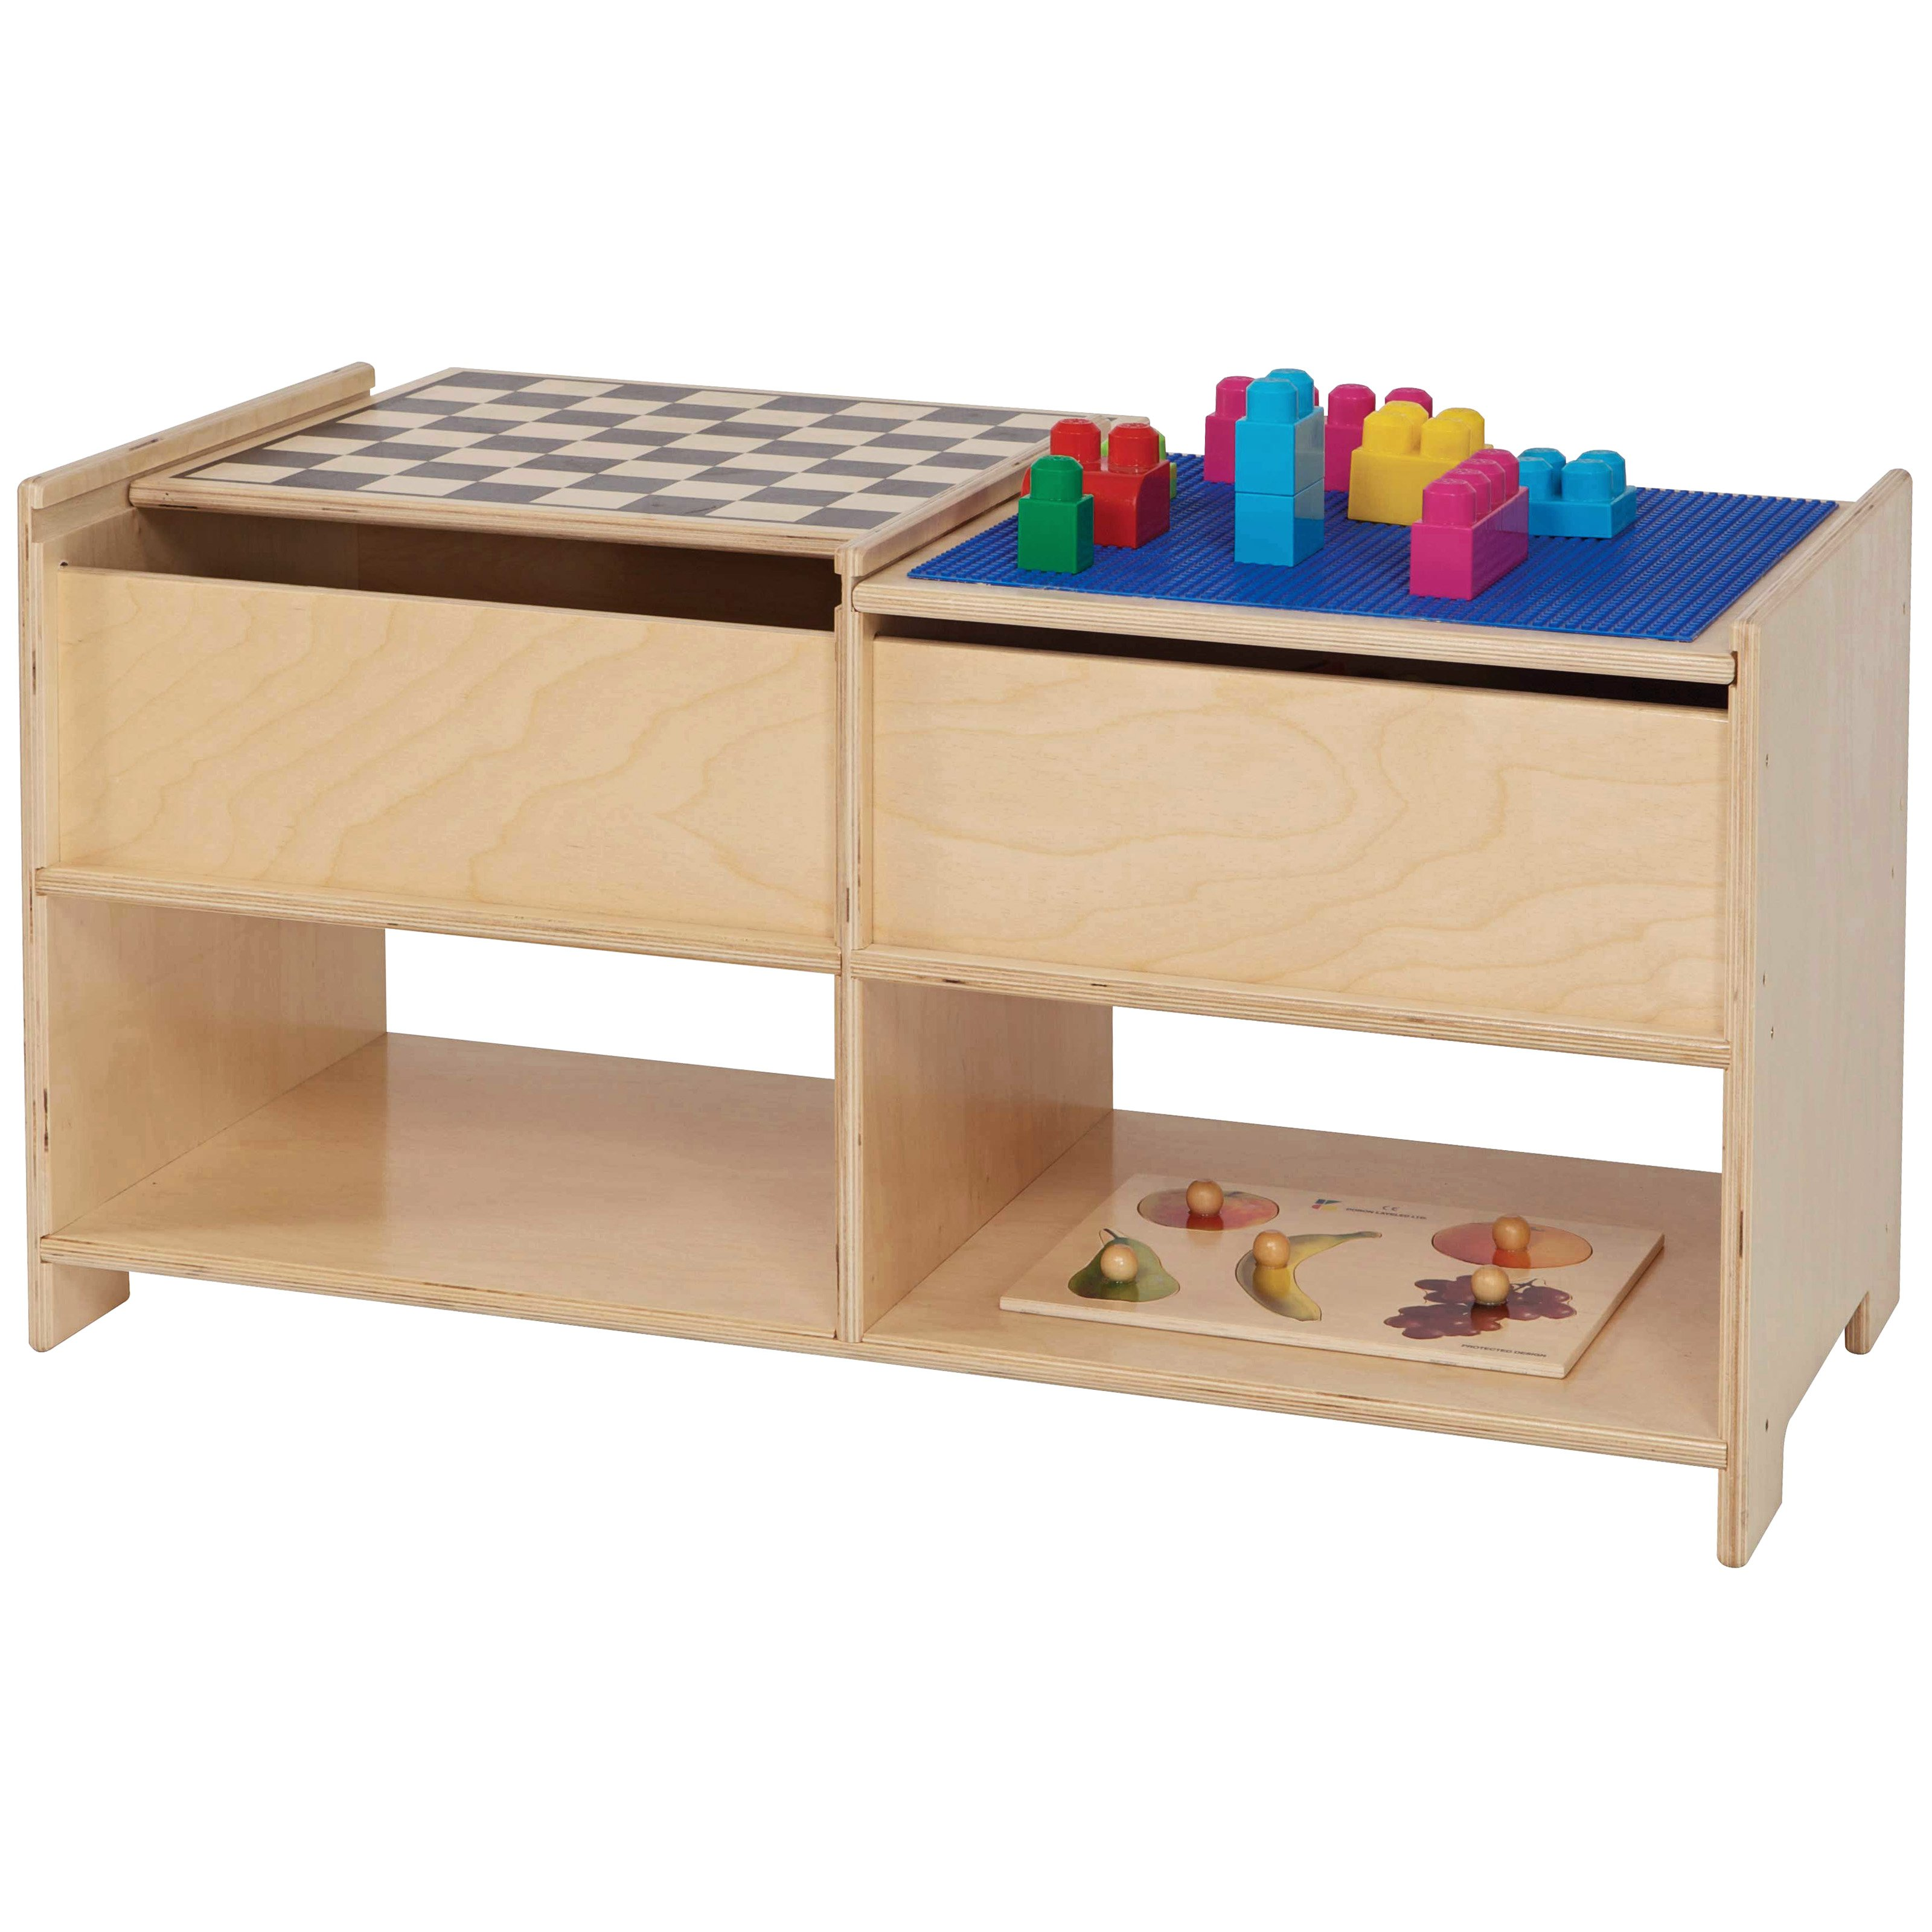 Wood Designs Build N Play Table